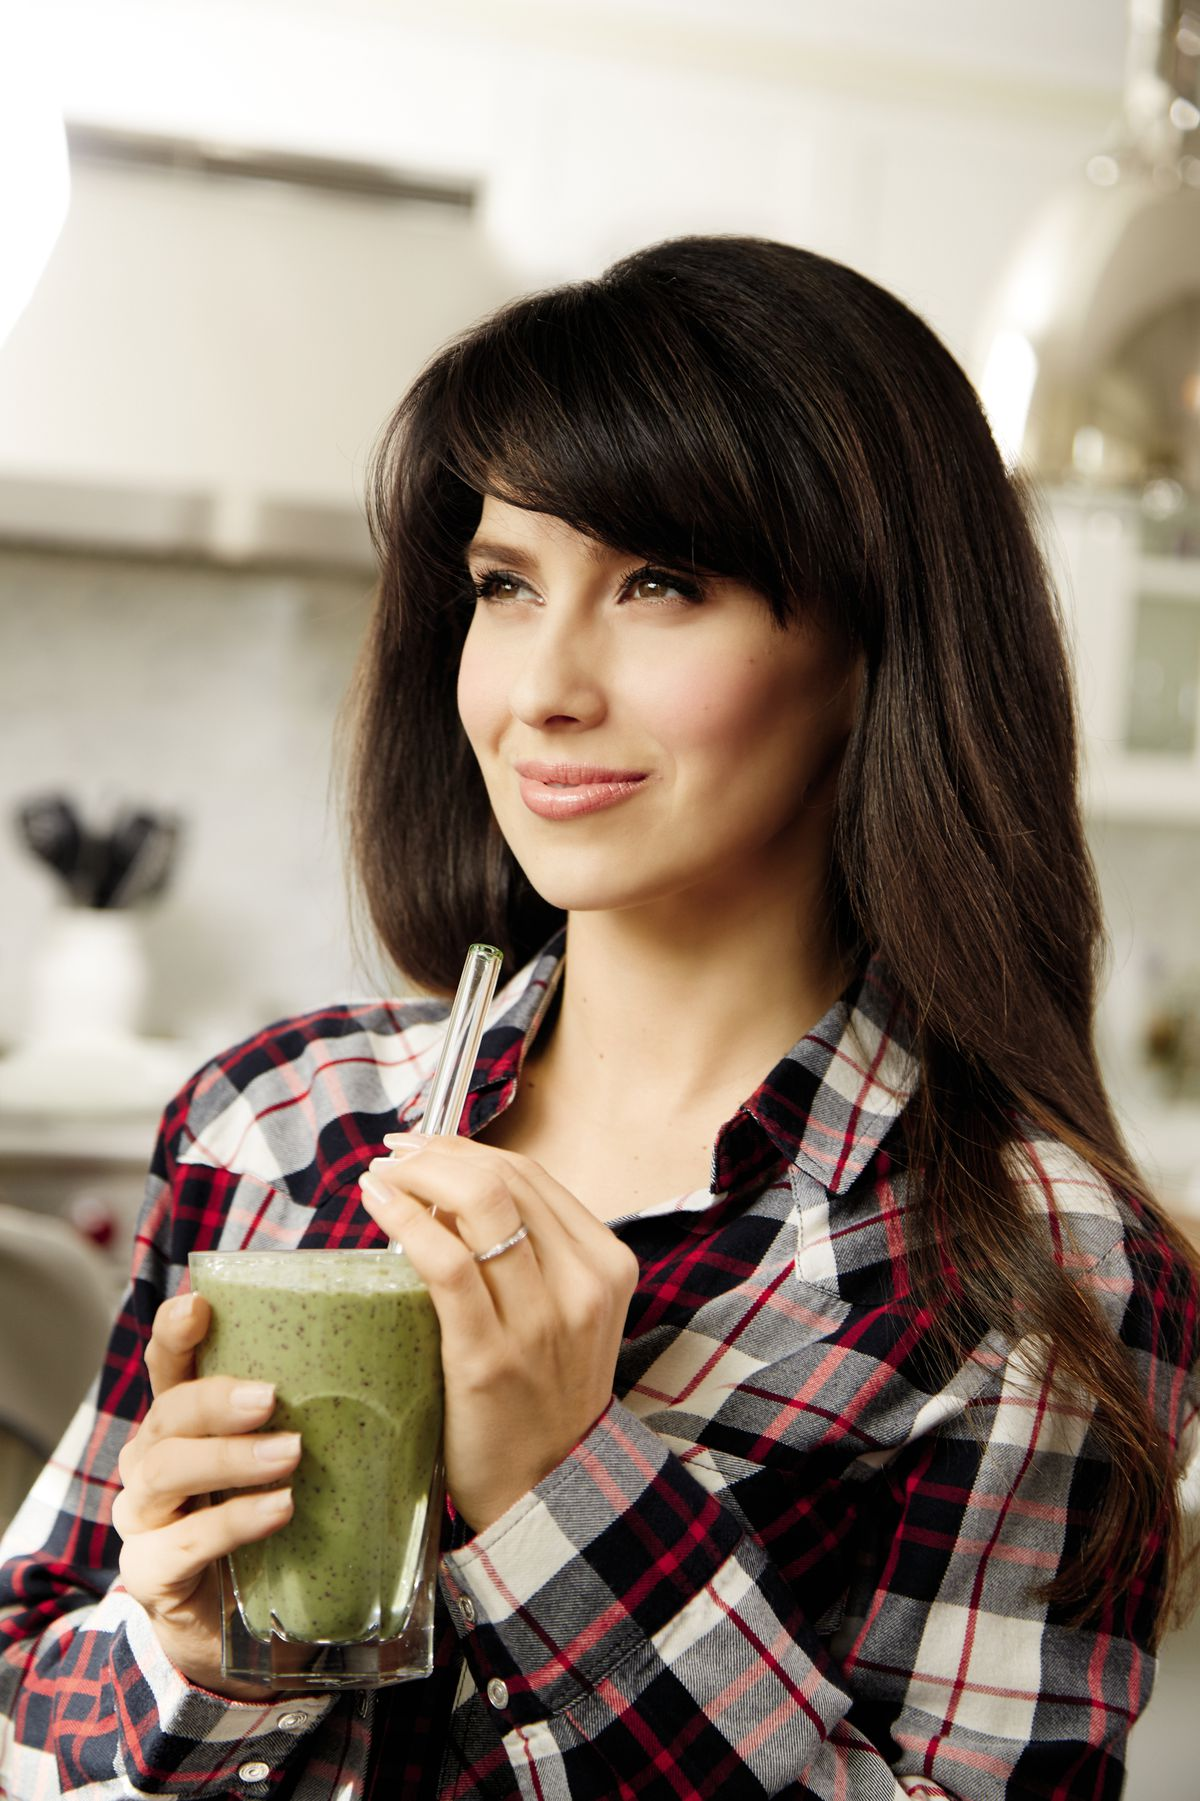 """Hilaria Baldwin enjoys a kale, blueberry, mango and almond butter smoothie, created from one of the recipes featured in her new book """"The Living Clearly Method: 5 Principles for a Fit Body, Healthy Mind & Joyful Life."""" 